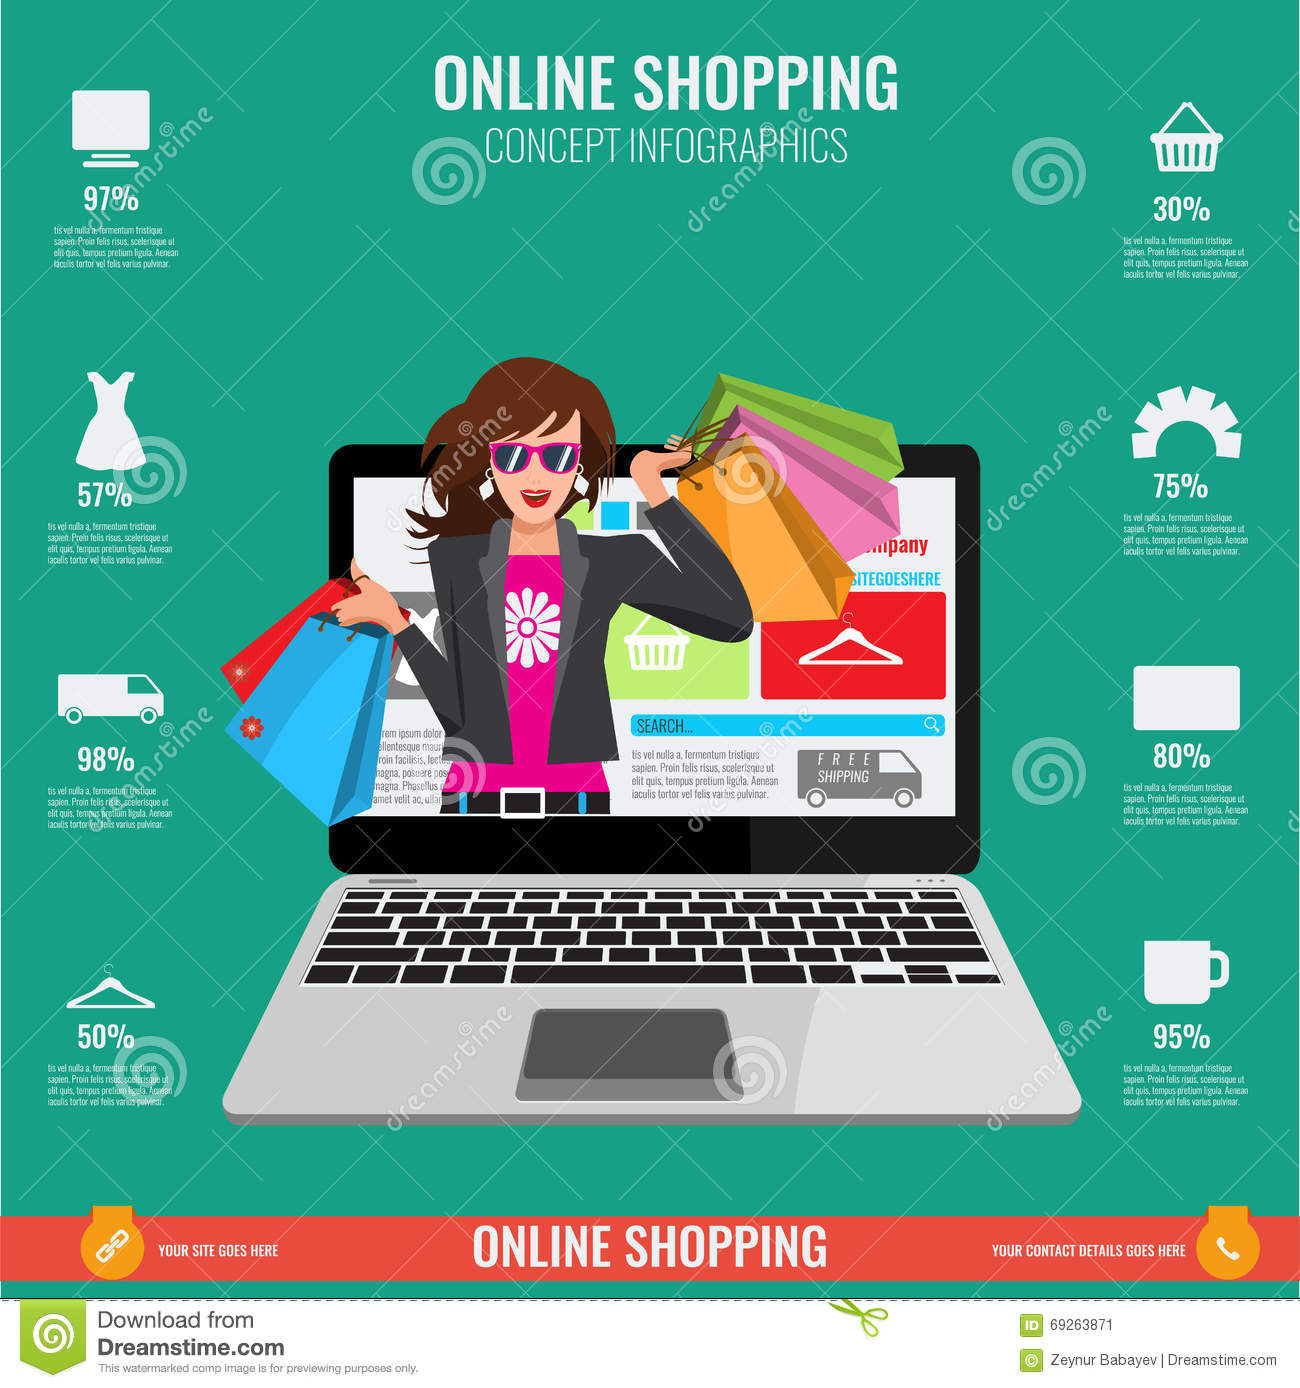 21fe940926b Online shopping concept infographics in vector. Illustrated Woman with  paper shopping bags watching from laptop.